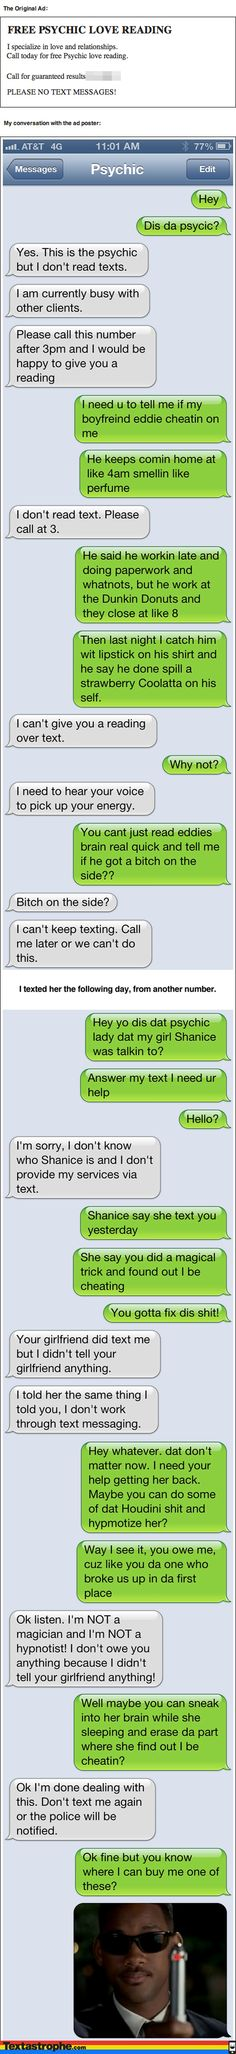 Textastrophe I'm dying, too funny!